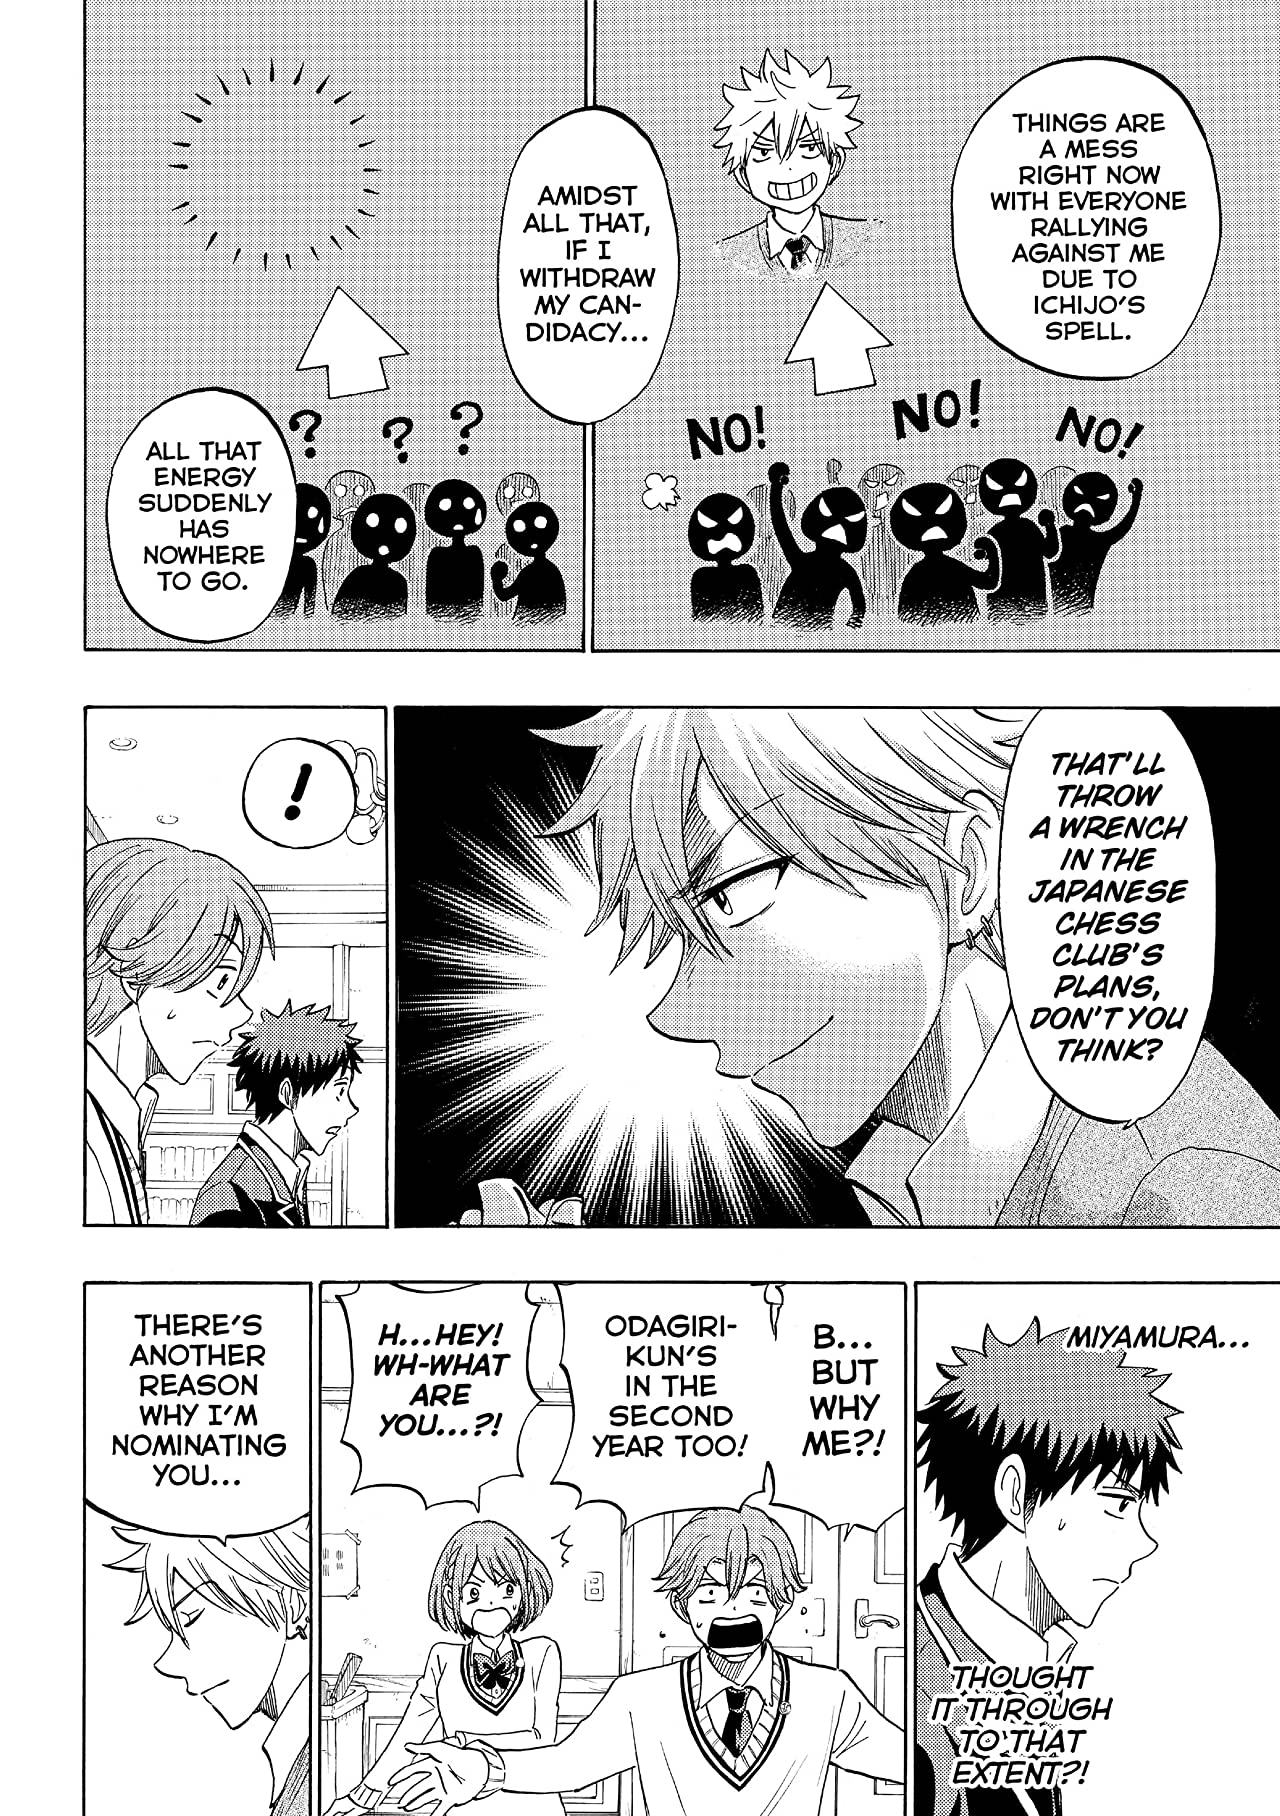 Yamada-kun and the Seven Witches #141